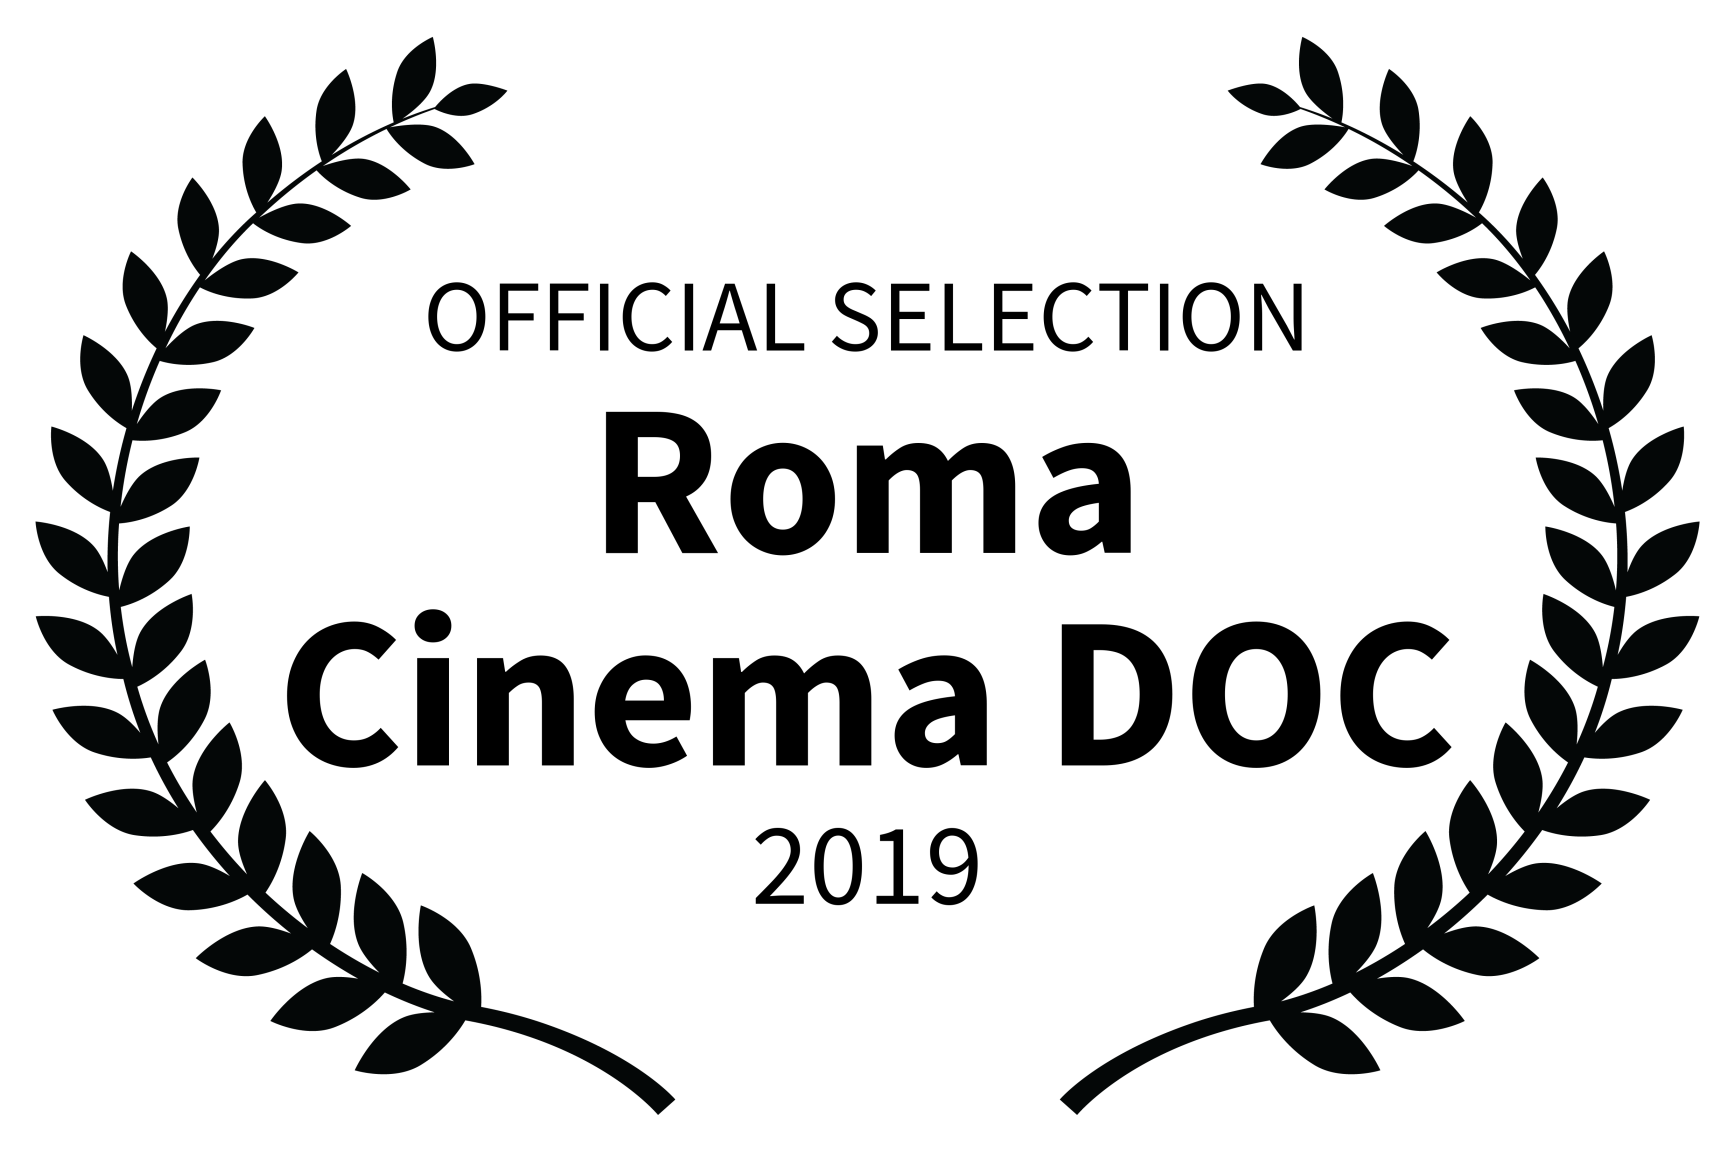 OFFICIAL SELECTION - Roma Cinema DOC - 2019